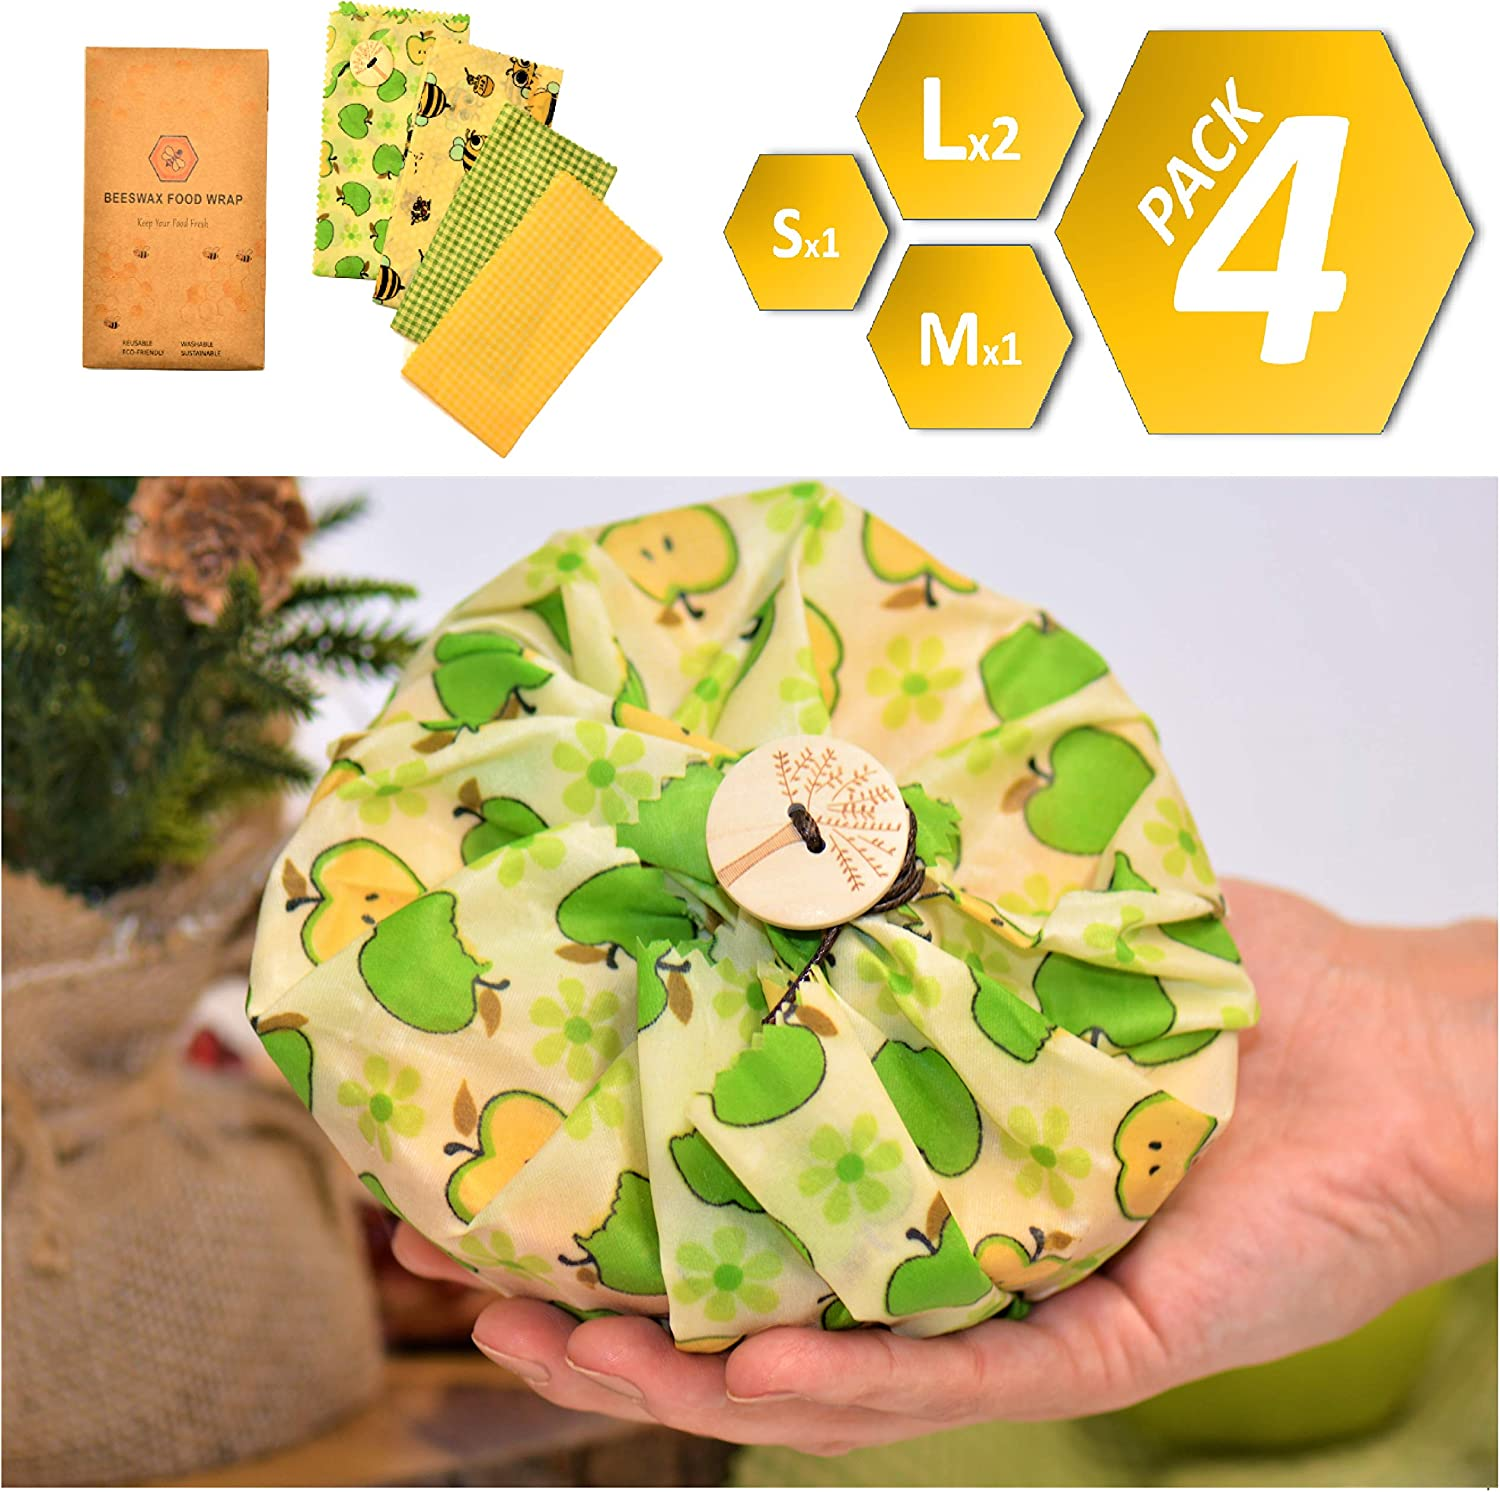 Beeswax Reusable Food Wraps | Saran Wrap Alternative | 4-pack | 2L 1M 1S | Plastic-Free Food Storage